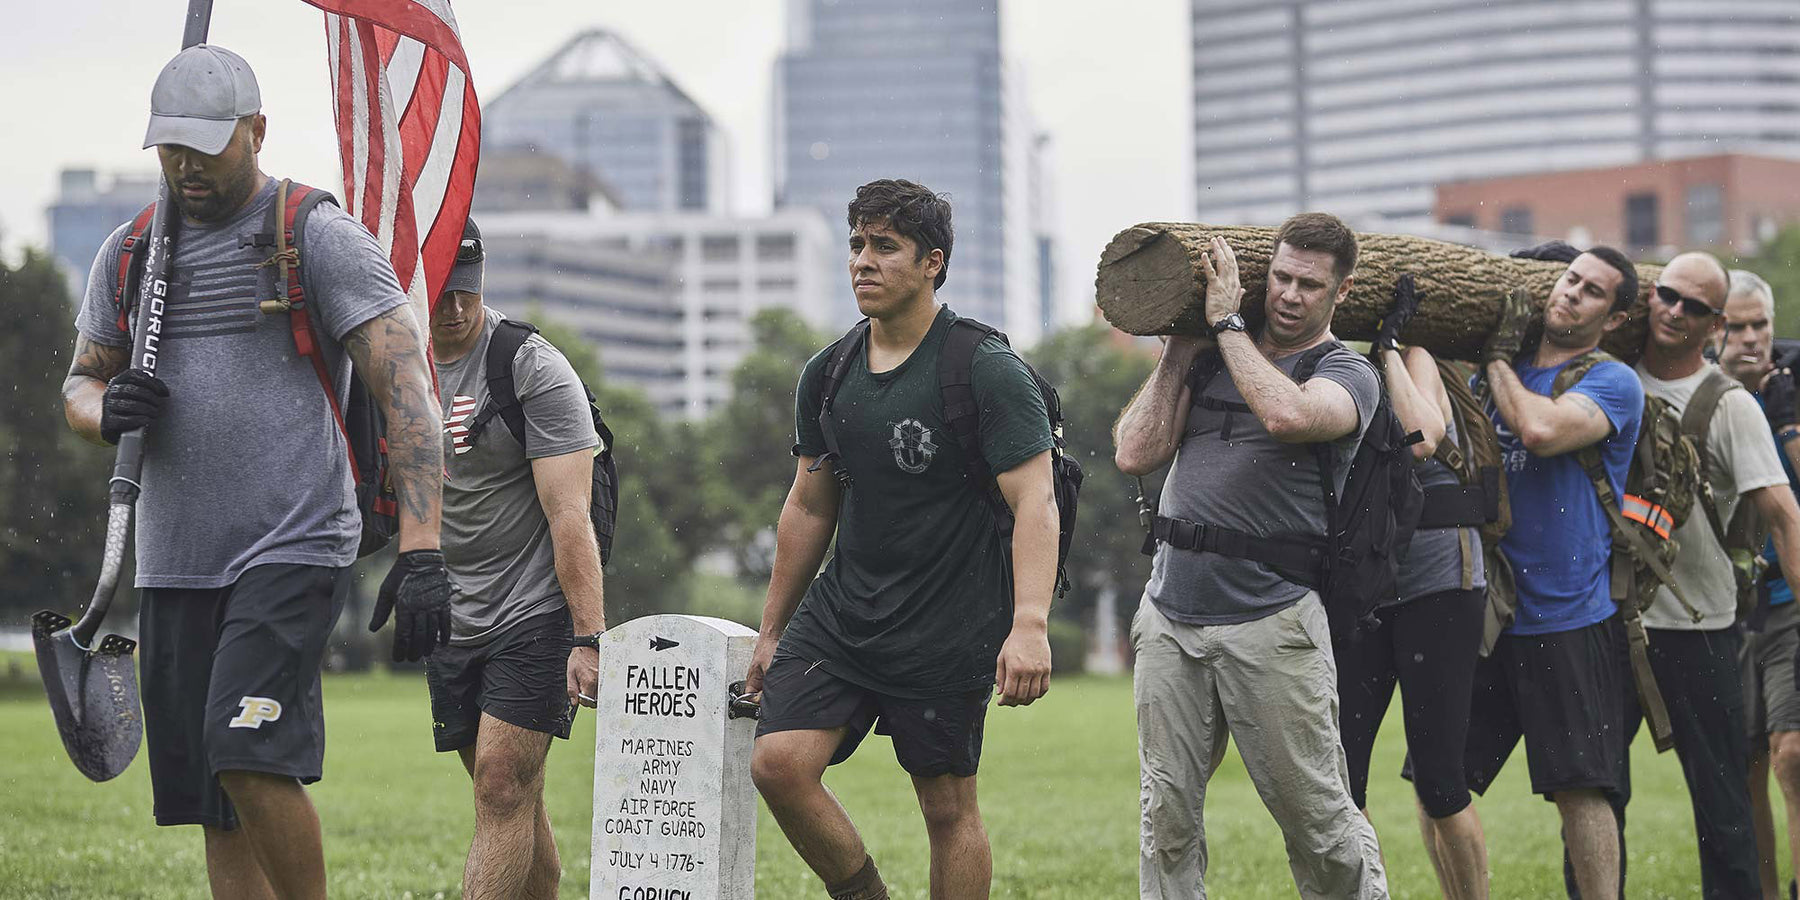 Group of people wearing rucksacks and holding a log during a GORUCK Challenge Event